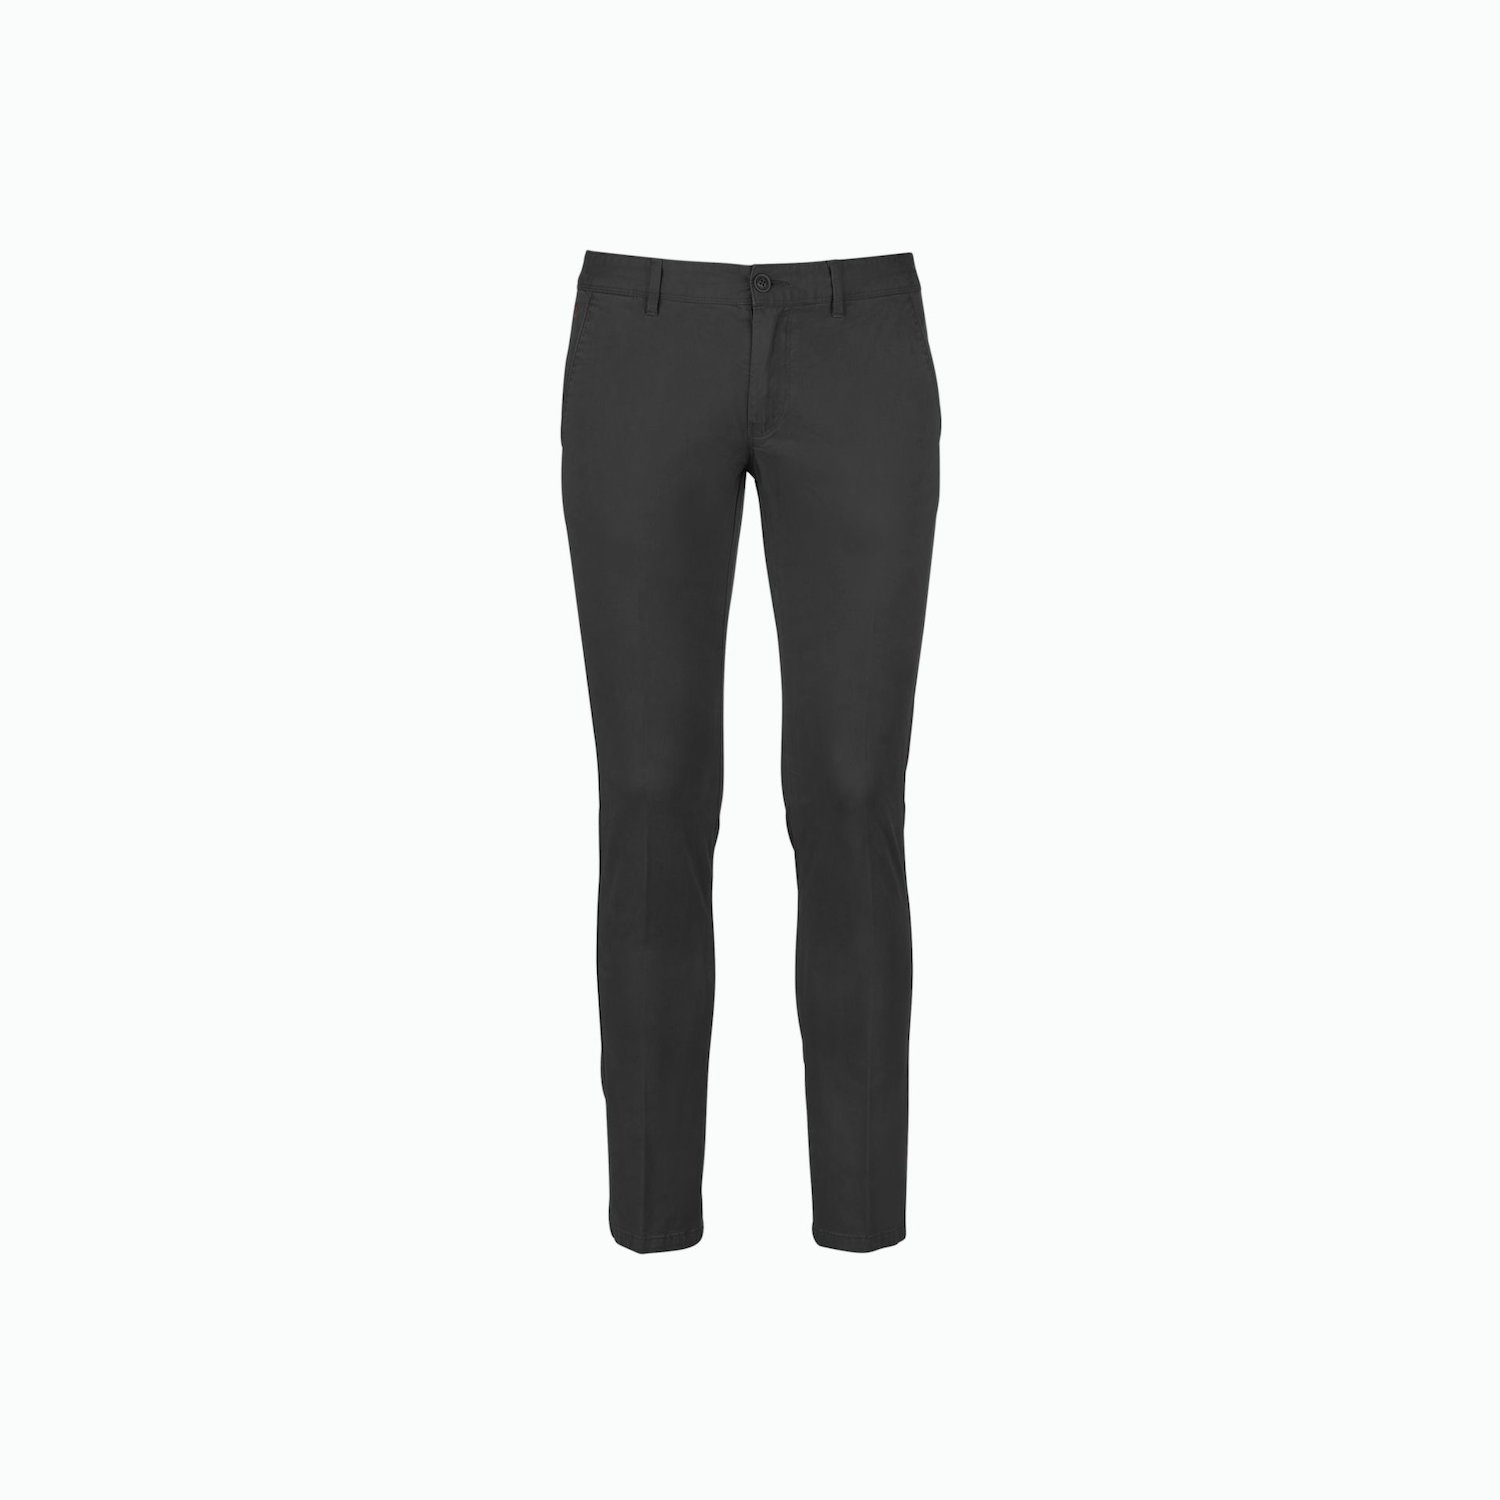 B3 pants - Anthracite